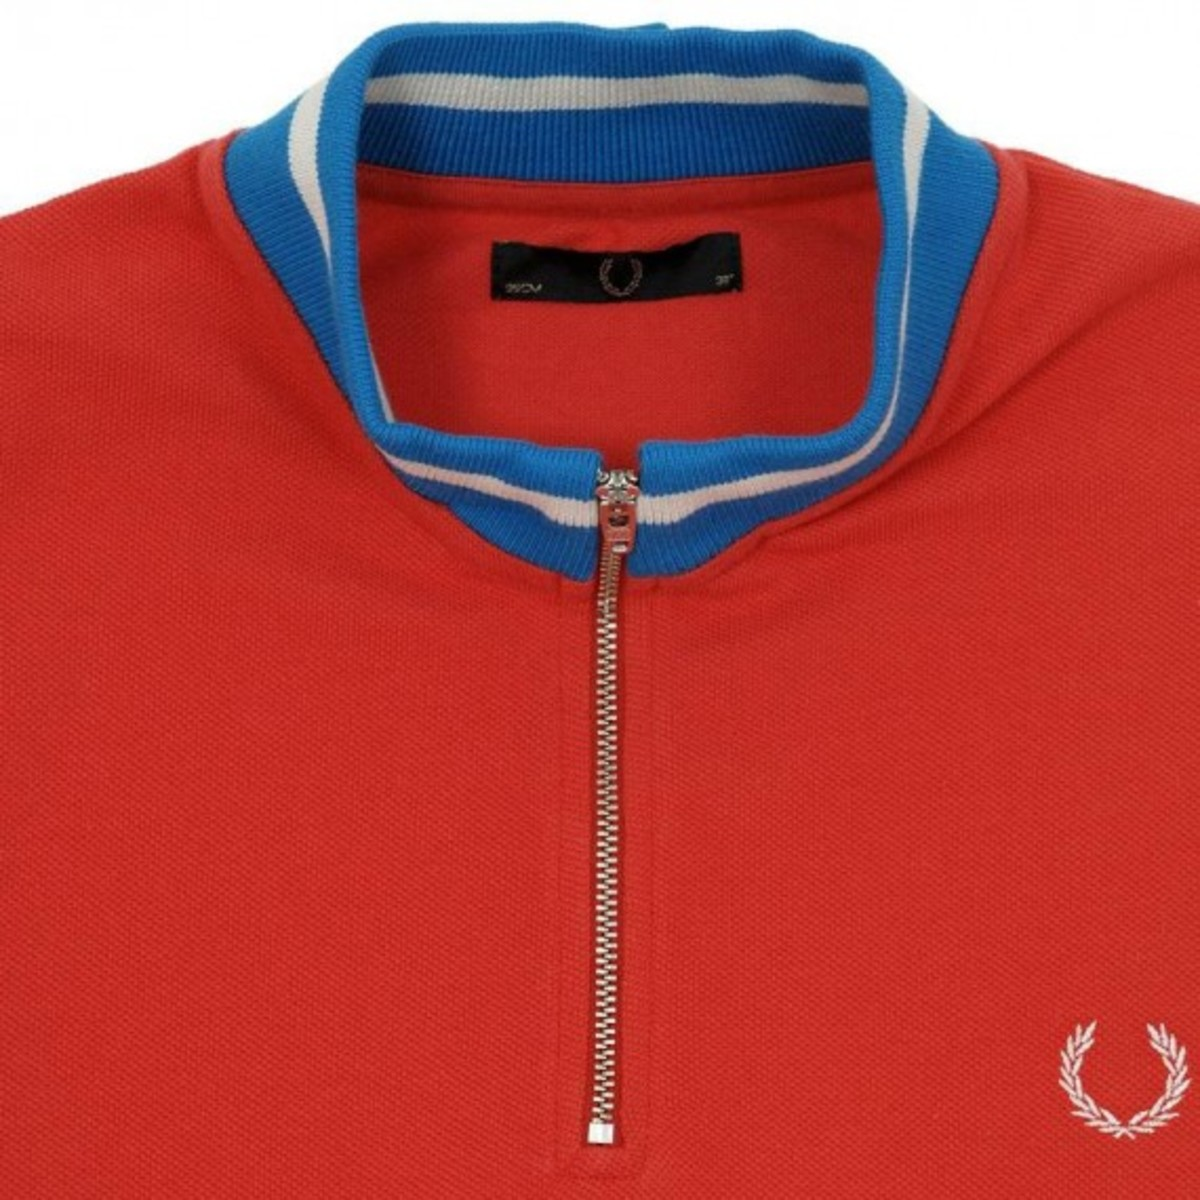 fred-perry-laurel-wreath-blank-canvas-cycling-29